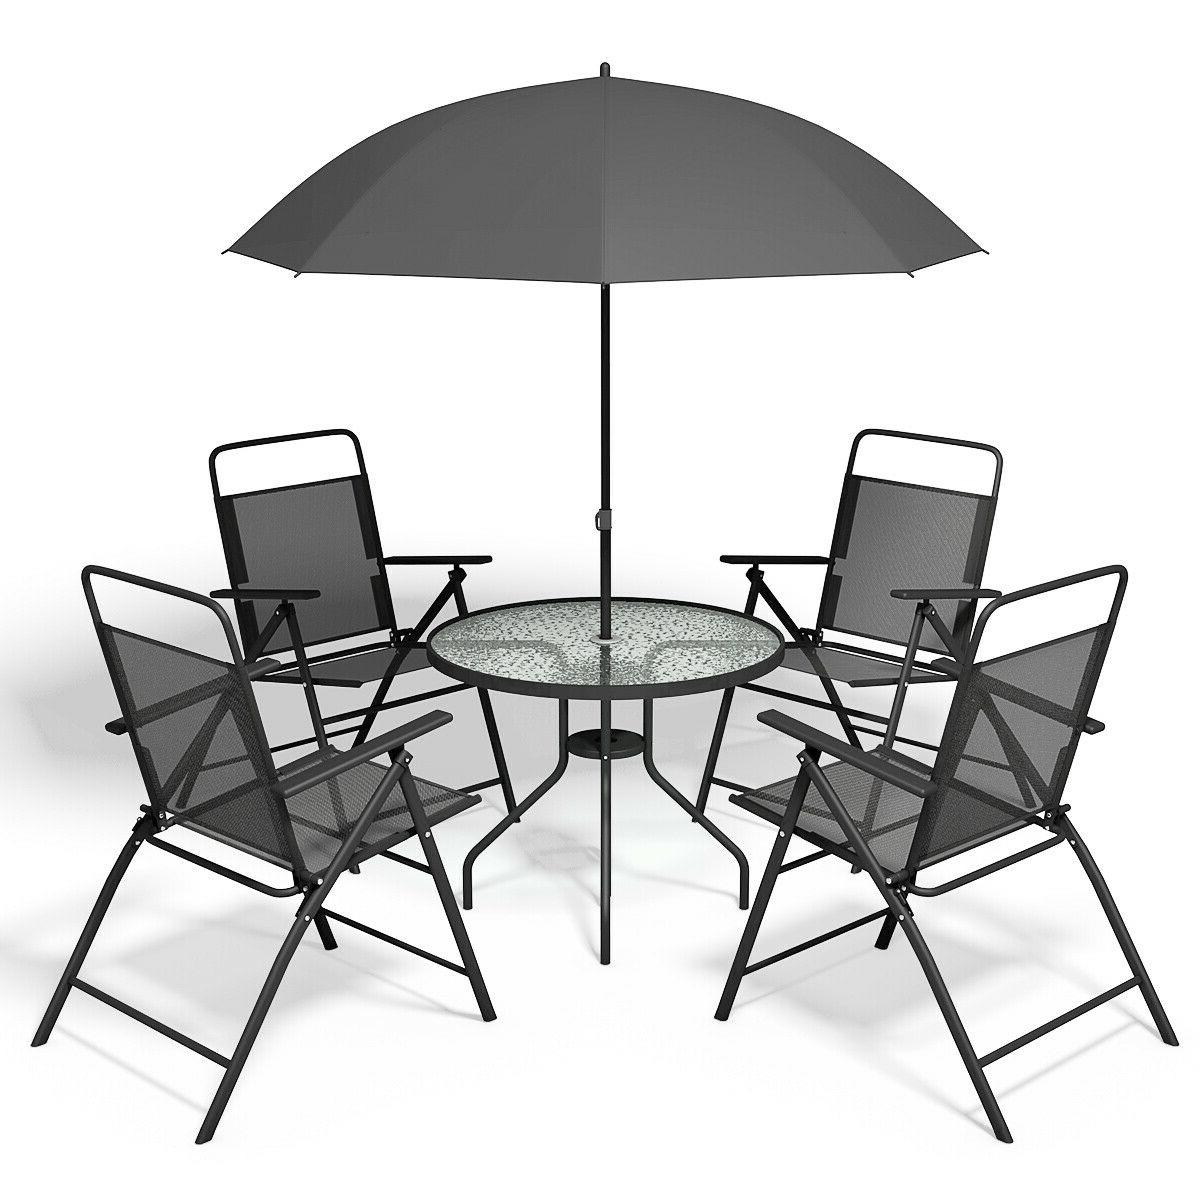 Patio Furniture Sets Clearance With Umbrella 5PC 5 Piece BHG